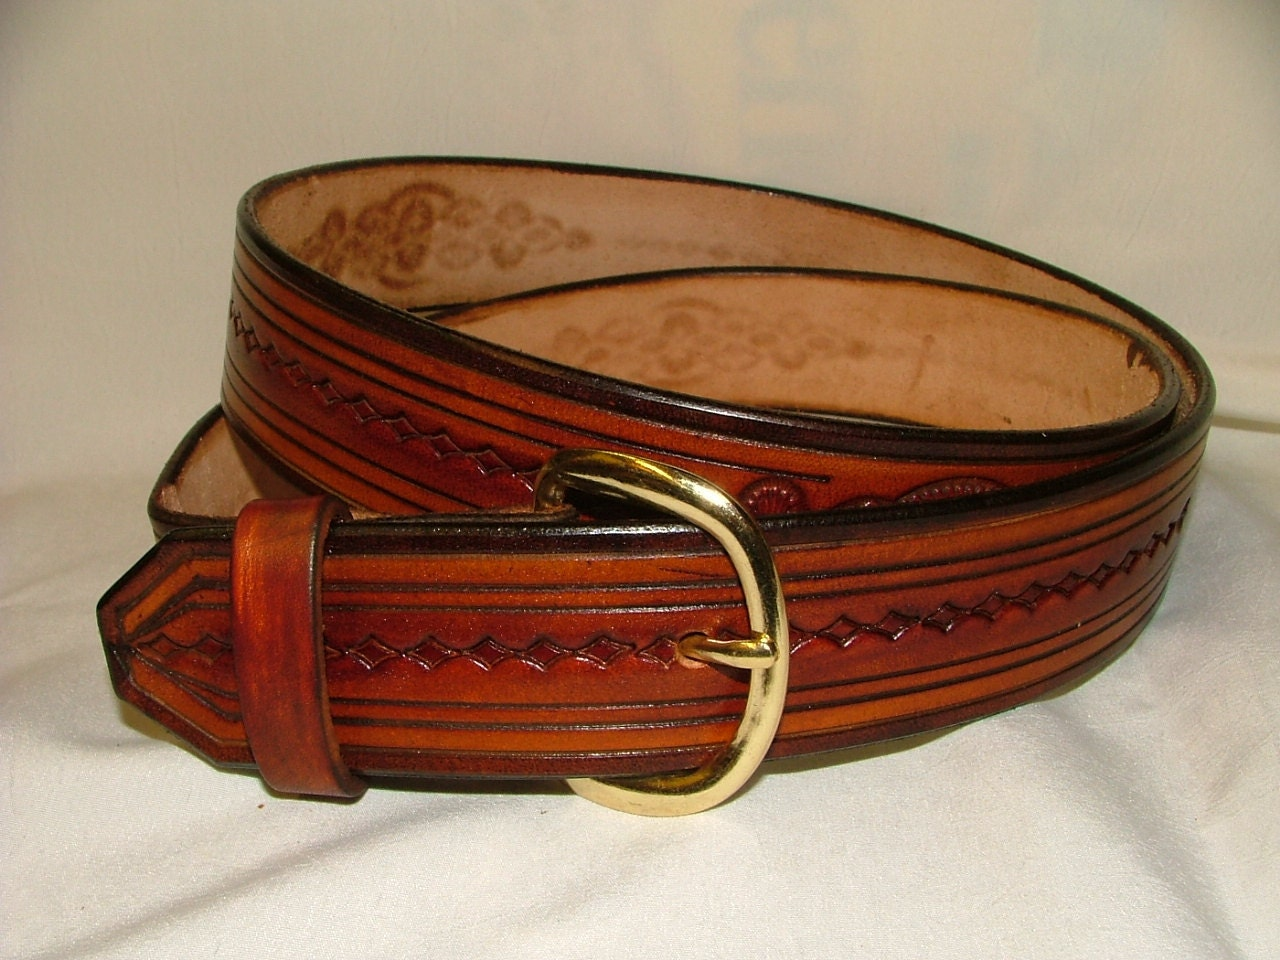 tooled leather belt no b 3005 1 1 2 wide by